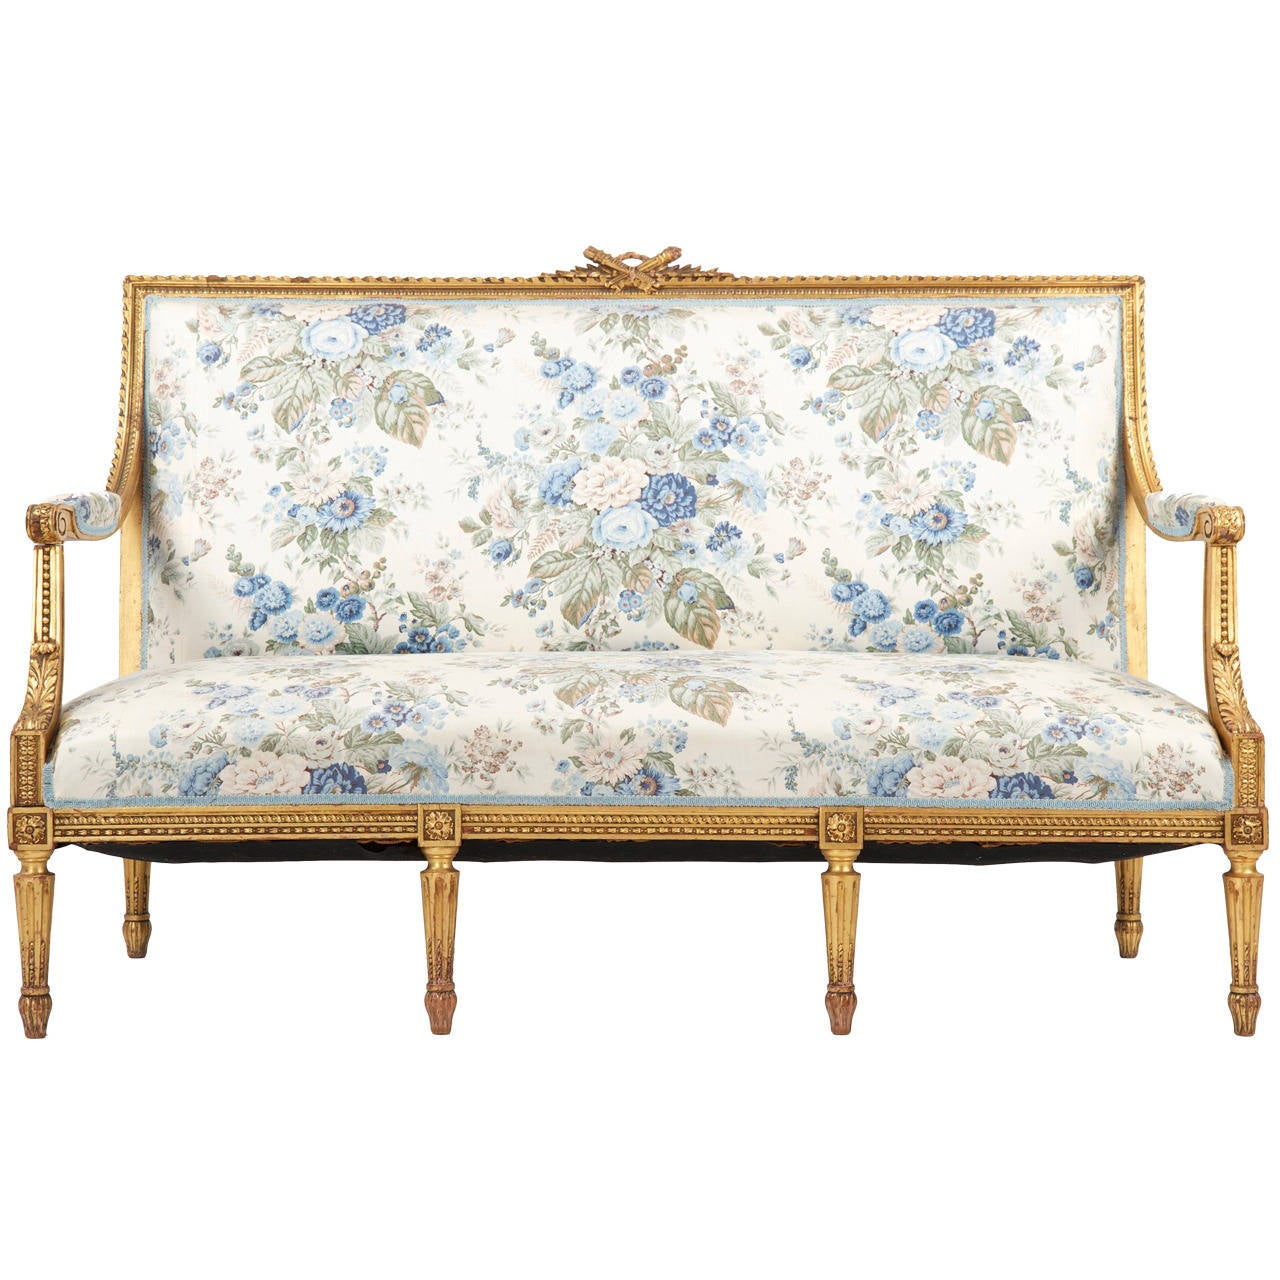 French Louis Xvi Style Giltwood Antique Settee Sofa Canape C 1900 At 1stdibs